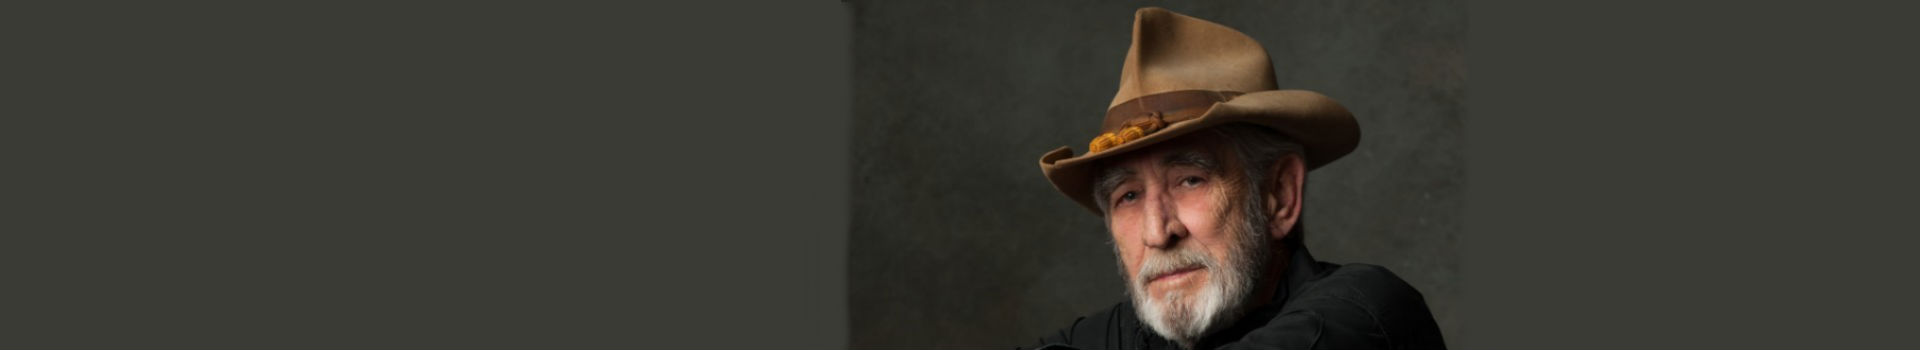 Don Williams in Concert banner image